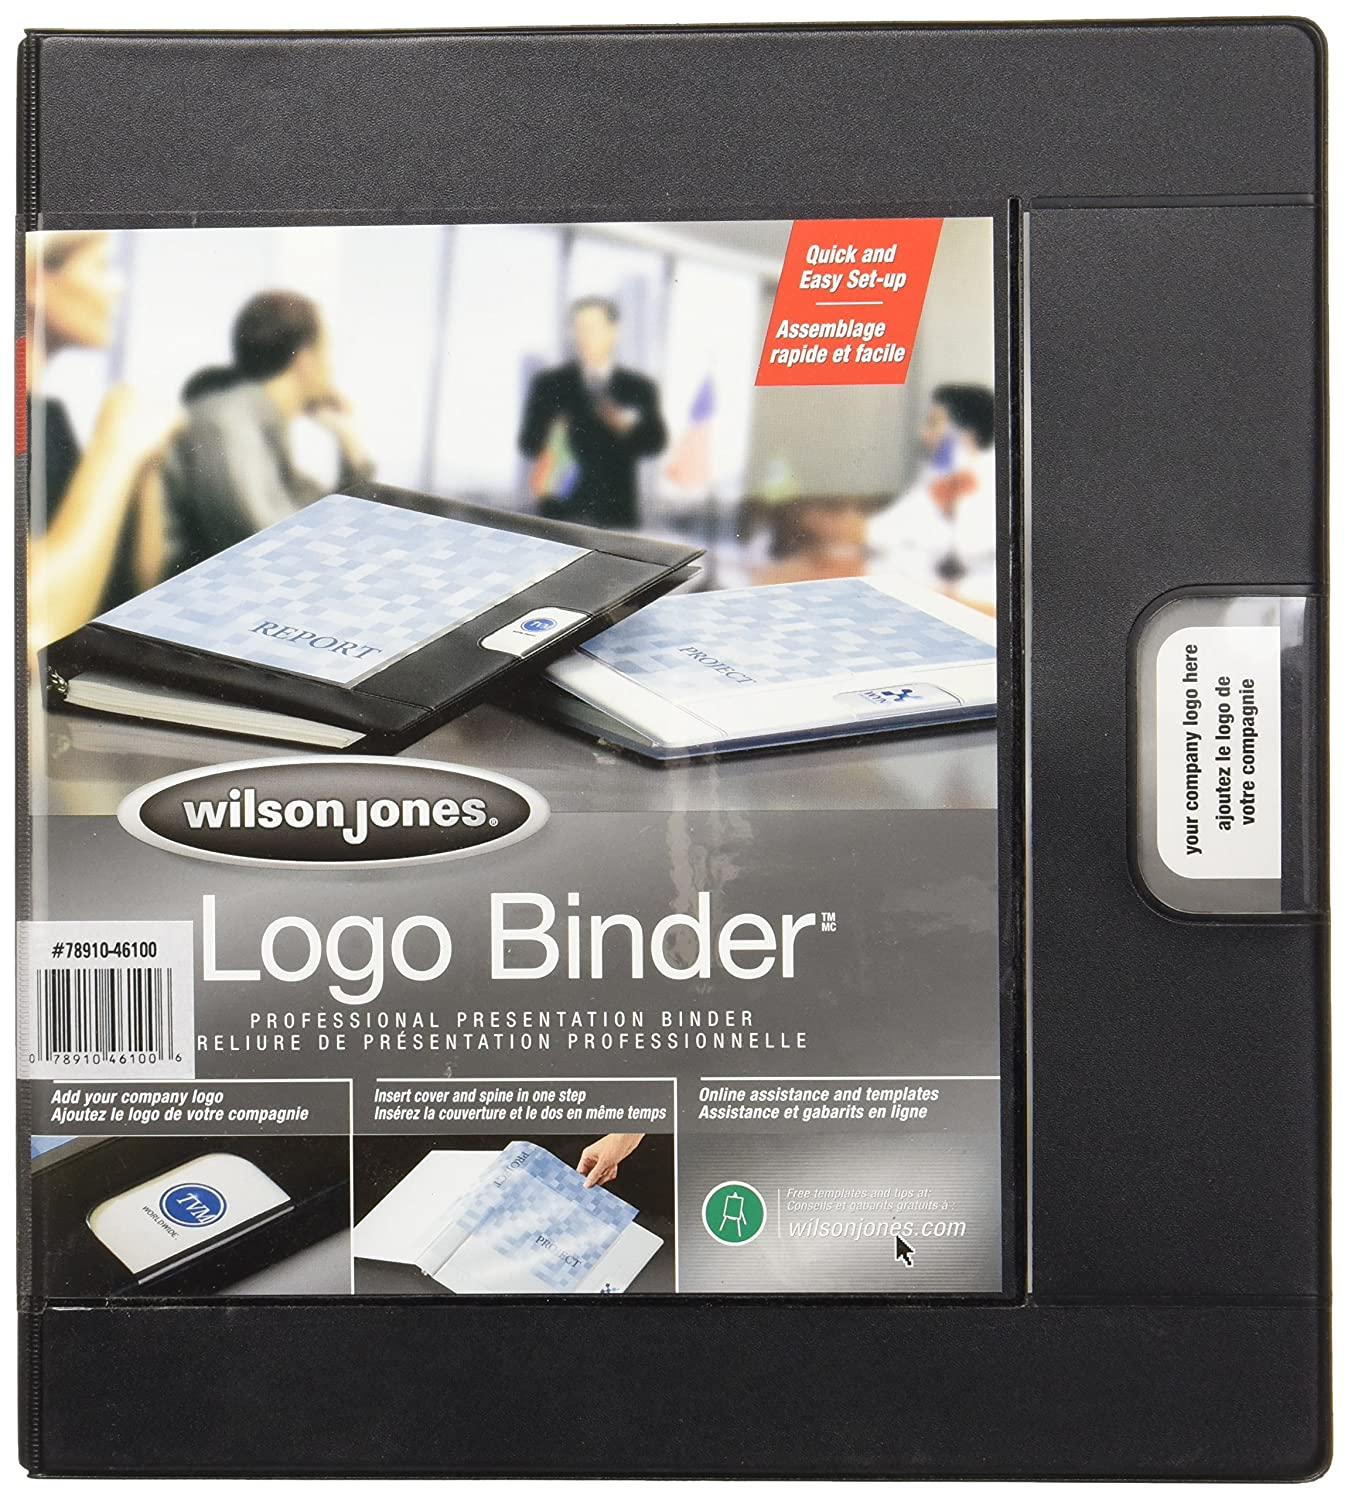 Amazon.com : Wilson Jones Custom Imprint Presentation Binder, 1 Inch ...